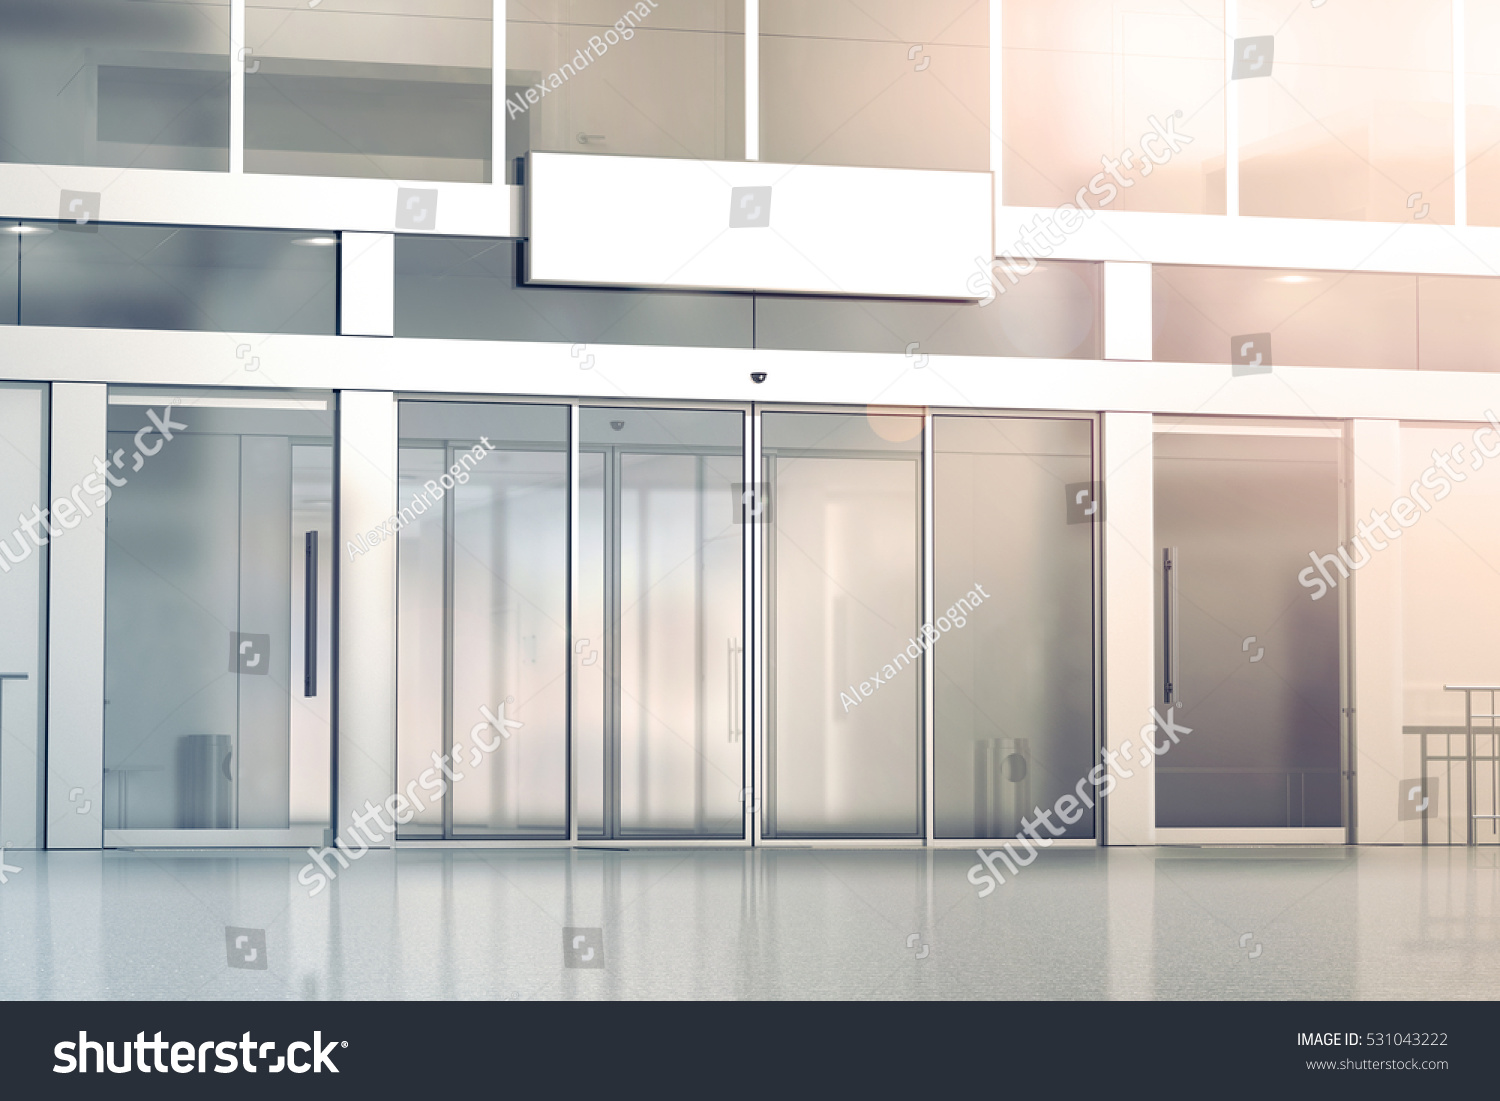 1101 #272F39 Store Glass Doors Entrance Mockup 3d Rendering. Commercial Building  picture/photo Commercial Building Entry Doors 45391500